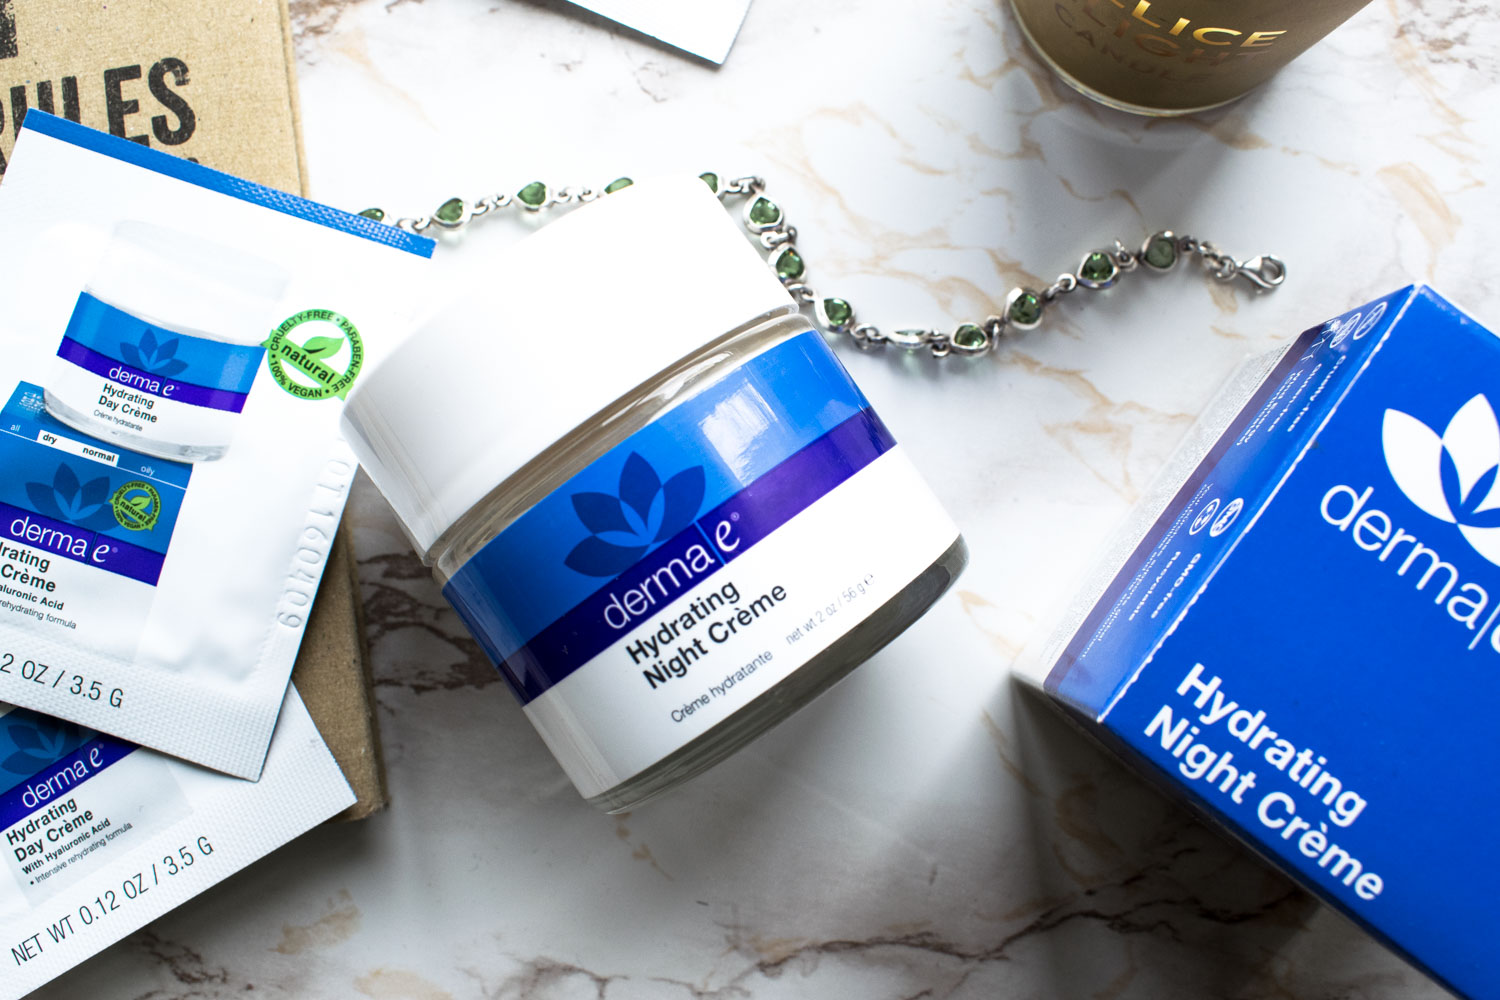 Review: Derma E Hydrating Night Cream with Hyaluronic Acid